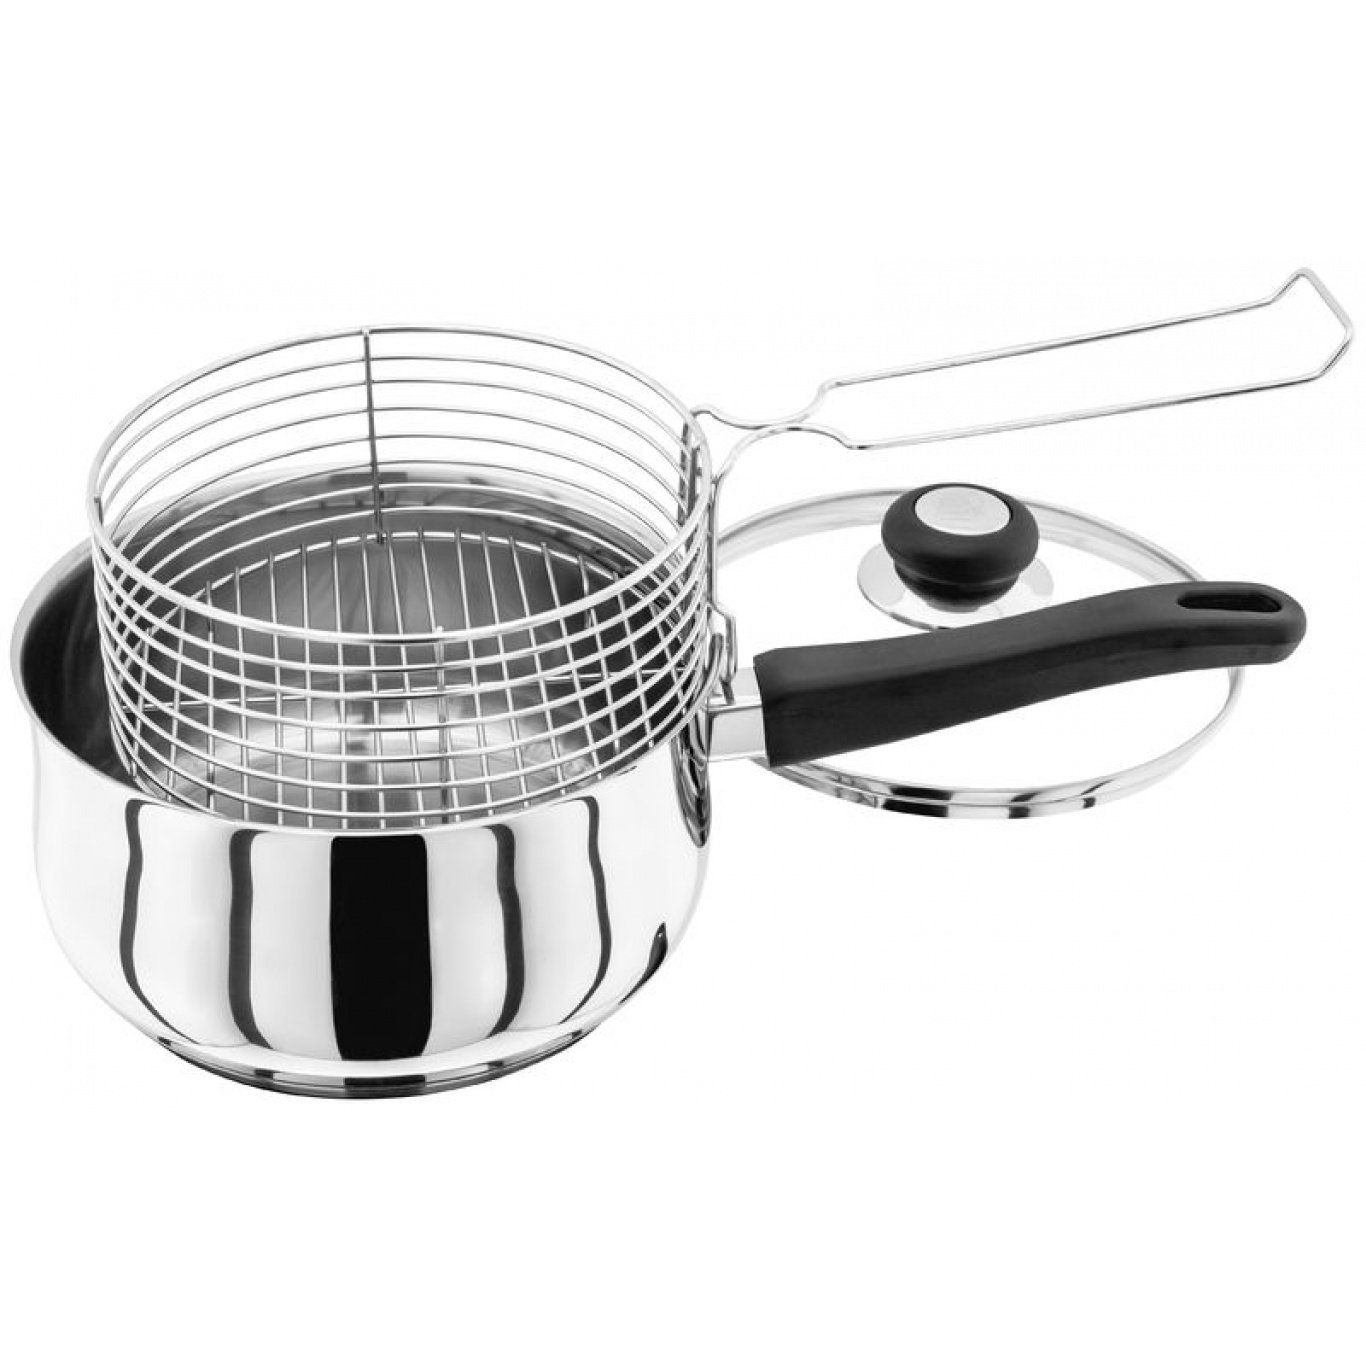 Image of Judge Vista 22cm Chip Pan with Basket